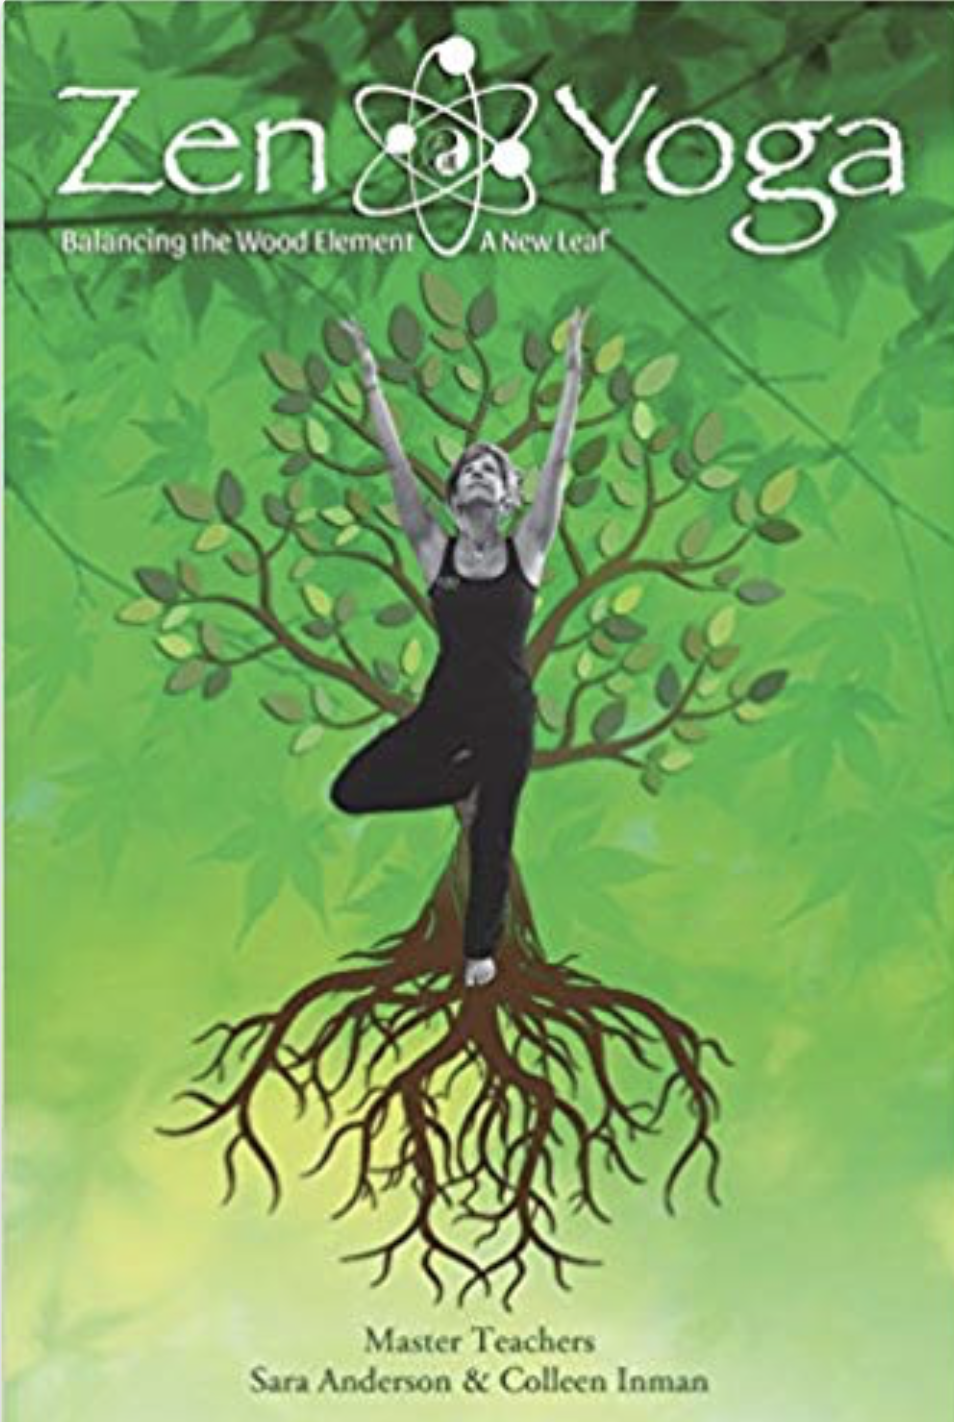 The first of the 5 elements of Zen Yoga. This book gives any practitioner specific movements, breath work, meditations and contemplations to achieve a more balanced wood element.